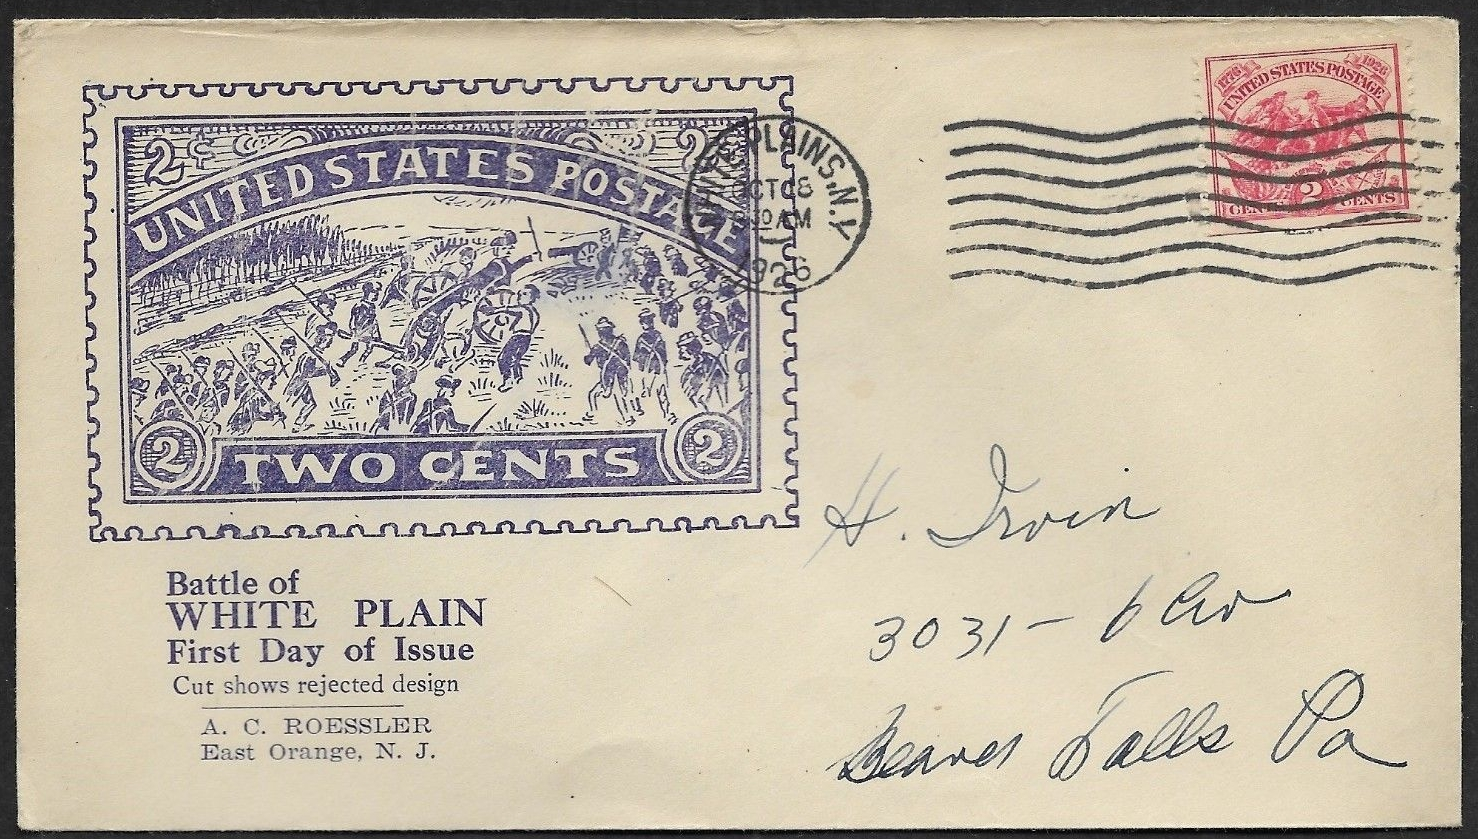 United States - Scott #629 (1926) first day cover with White Plains cancellation; Roessler cachet featuring one of the rejected designs; Roessler came under scrutiny by the USPOD around this time for such stamp-like cachets.